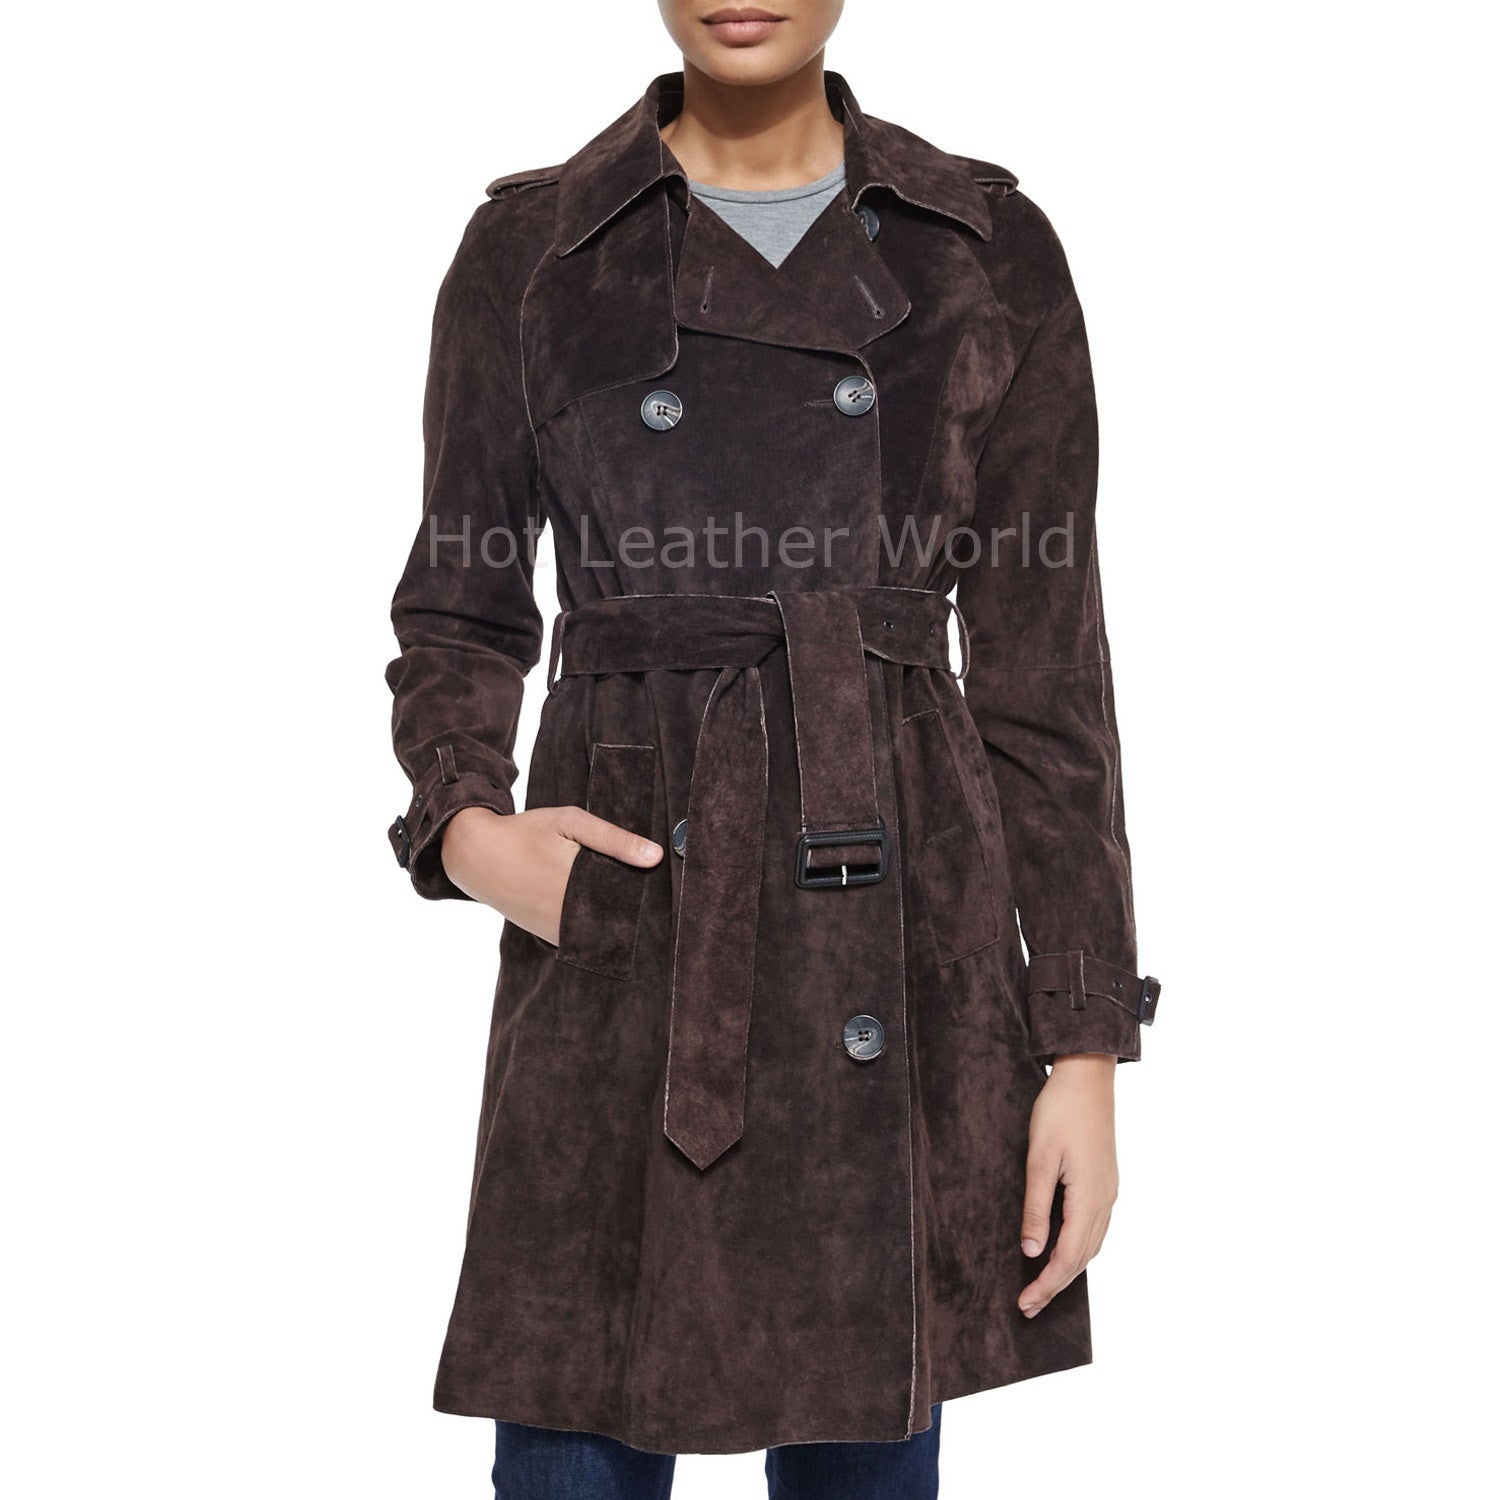 Winter Special Women Suede Leather Coat -  HOTLEATHERWORLD